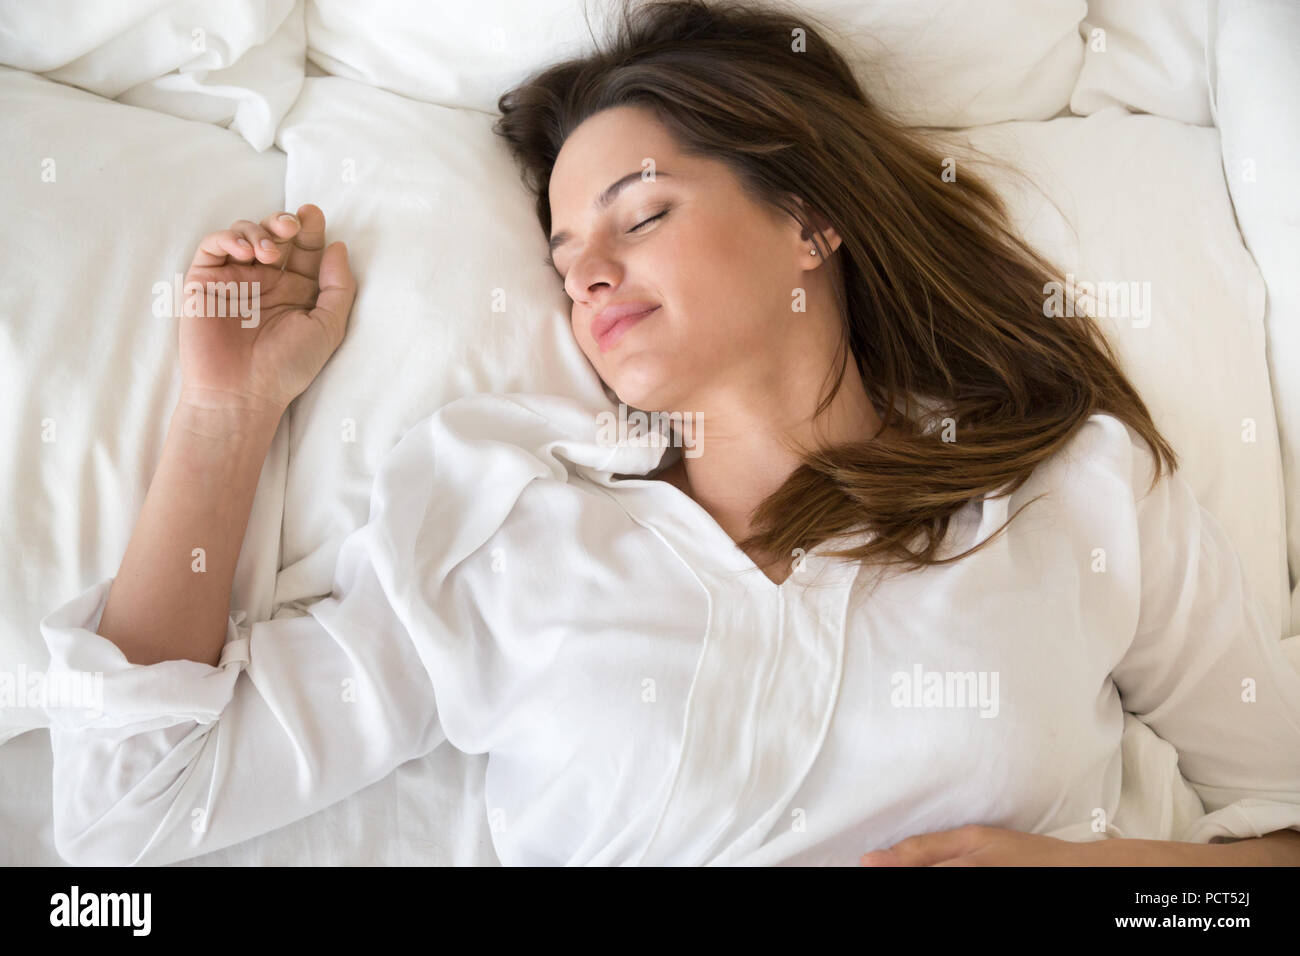 Relaxed young female sleeping well in cozy white bed - Stock Image